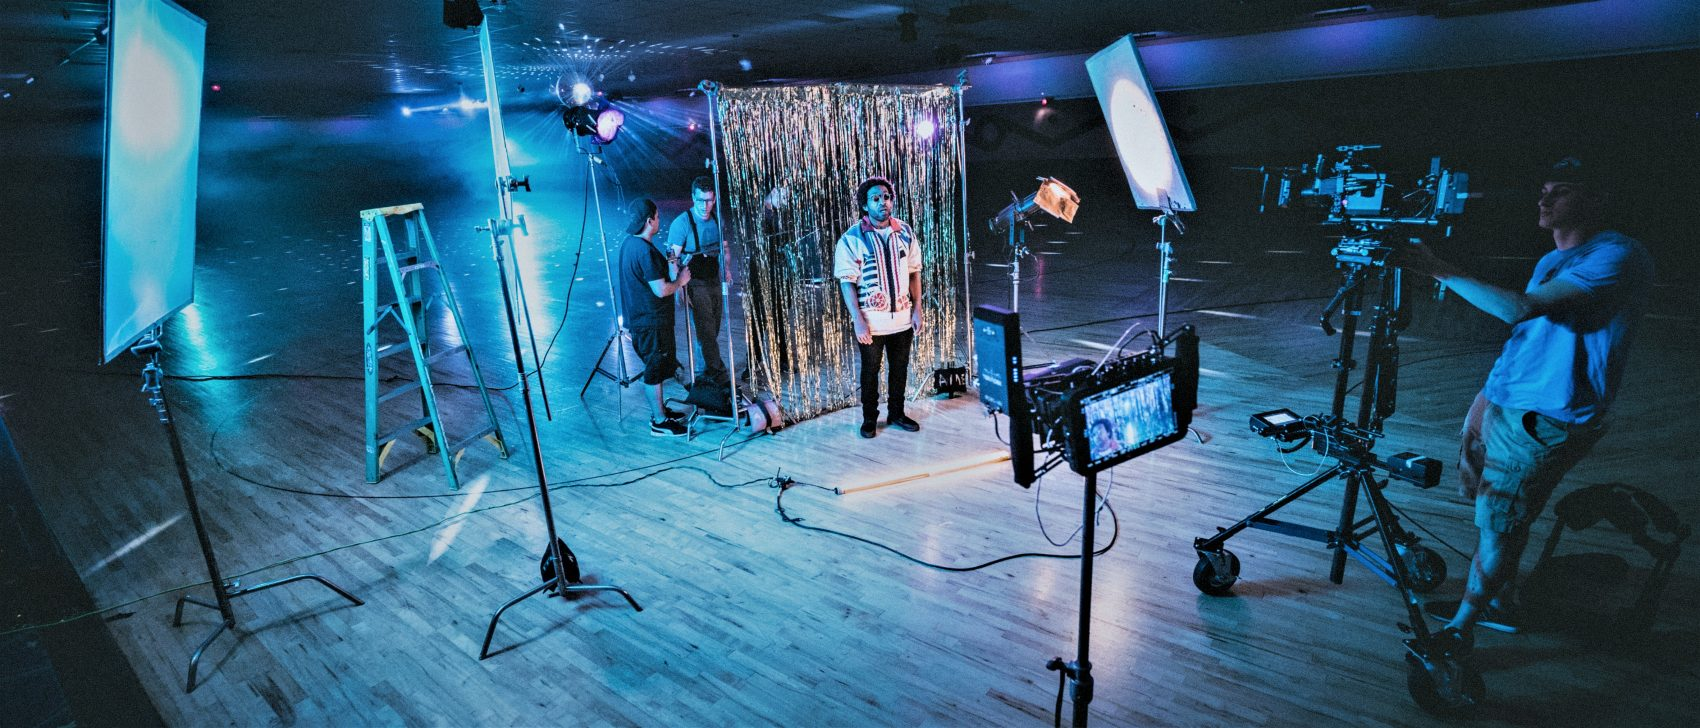 Best Cameras for Music Videos [Ultimate Guide]